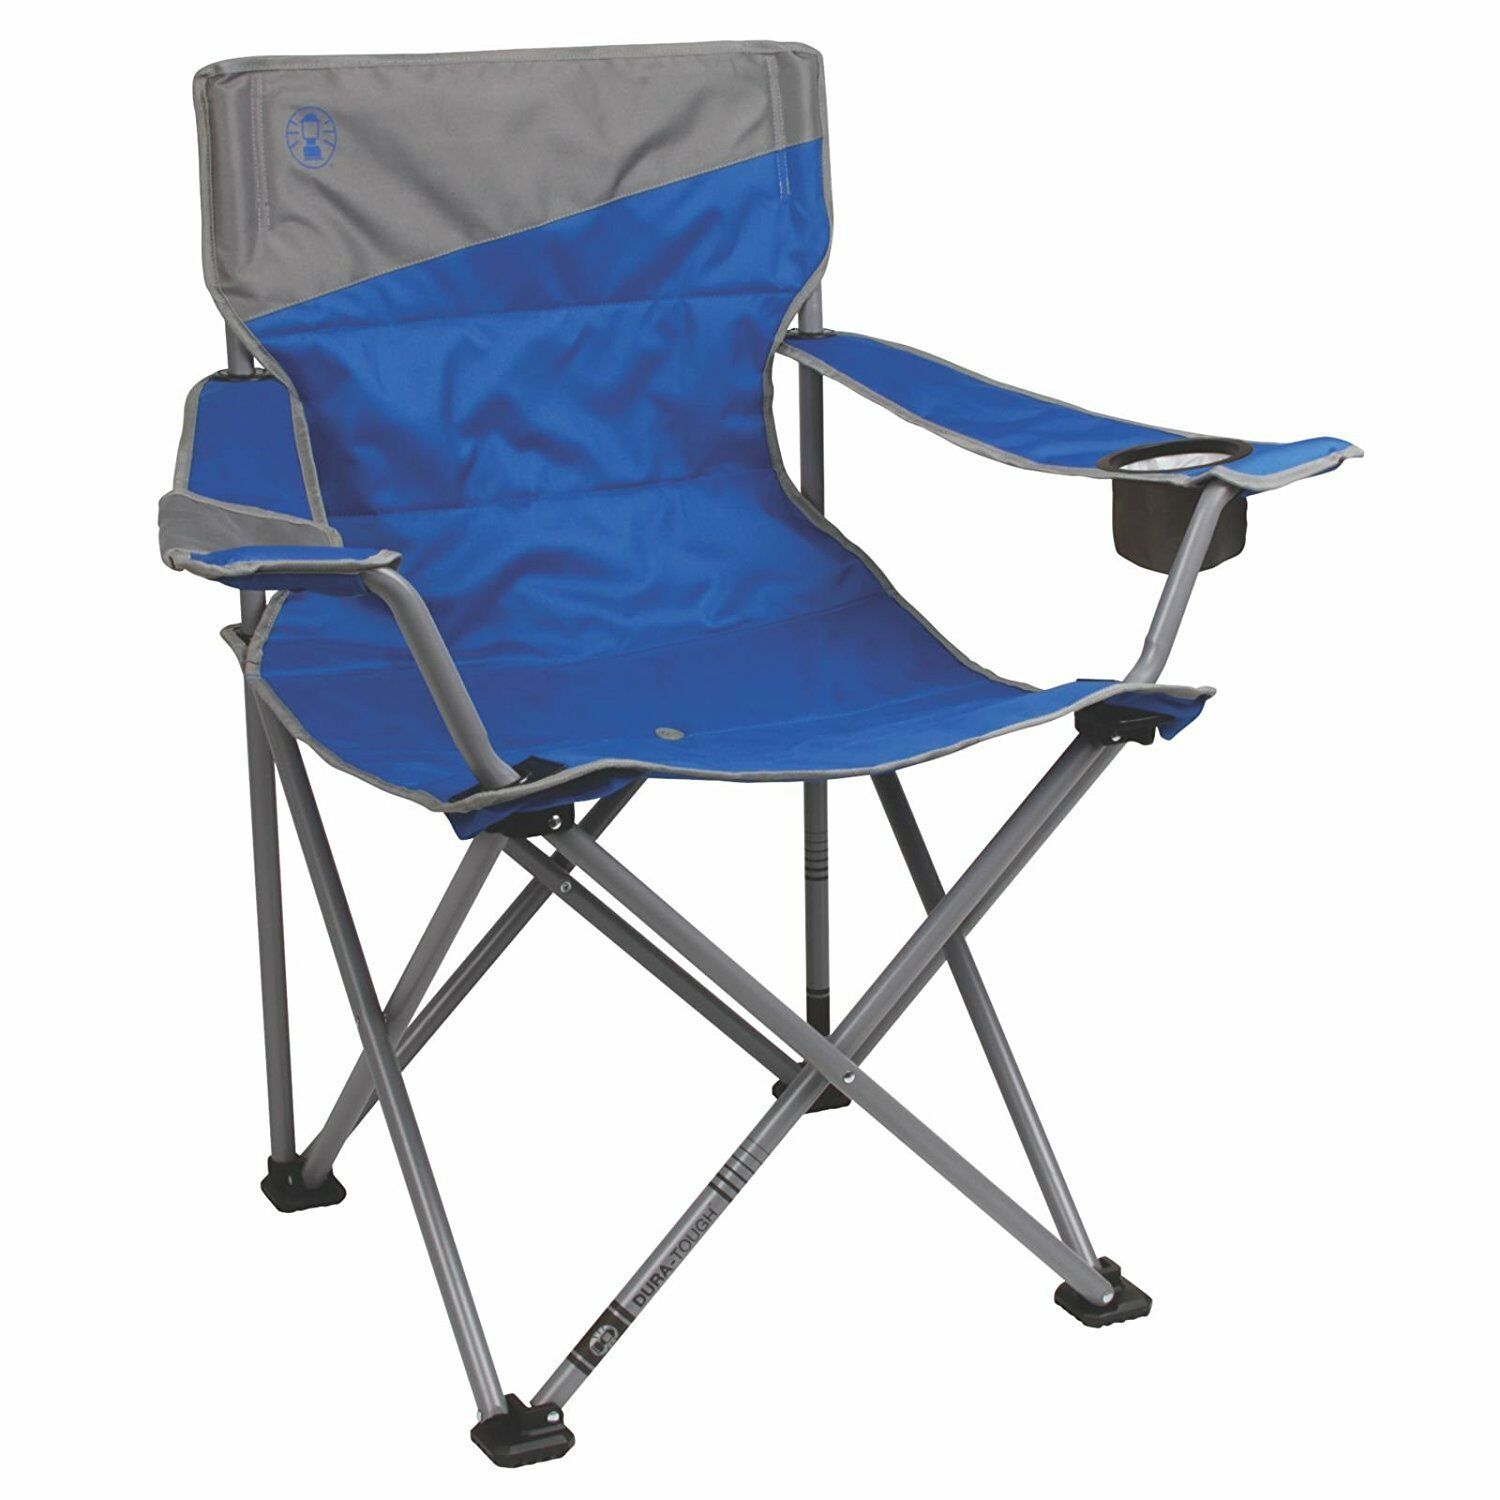 Heavy Duty Big and Tall Beach Camping Quad Chair With Cup Holder Holds 600 Lbs